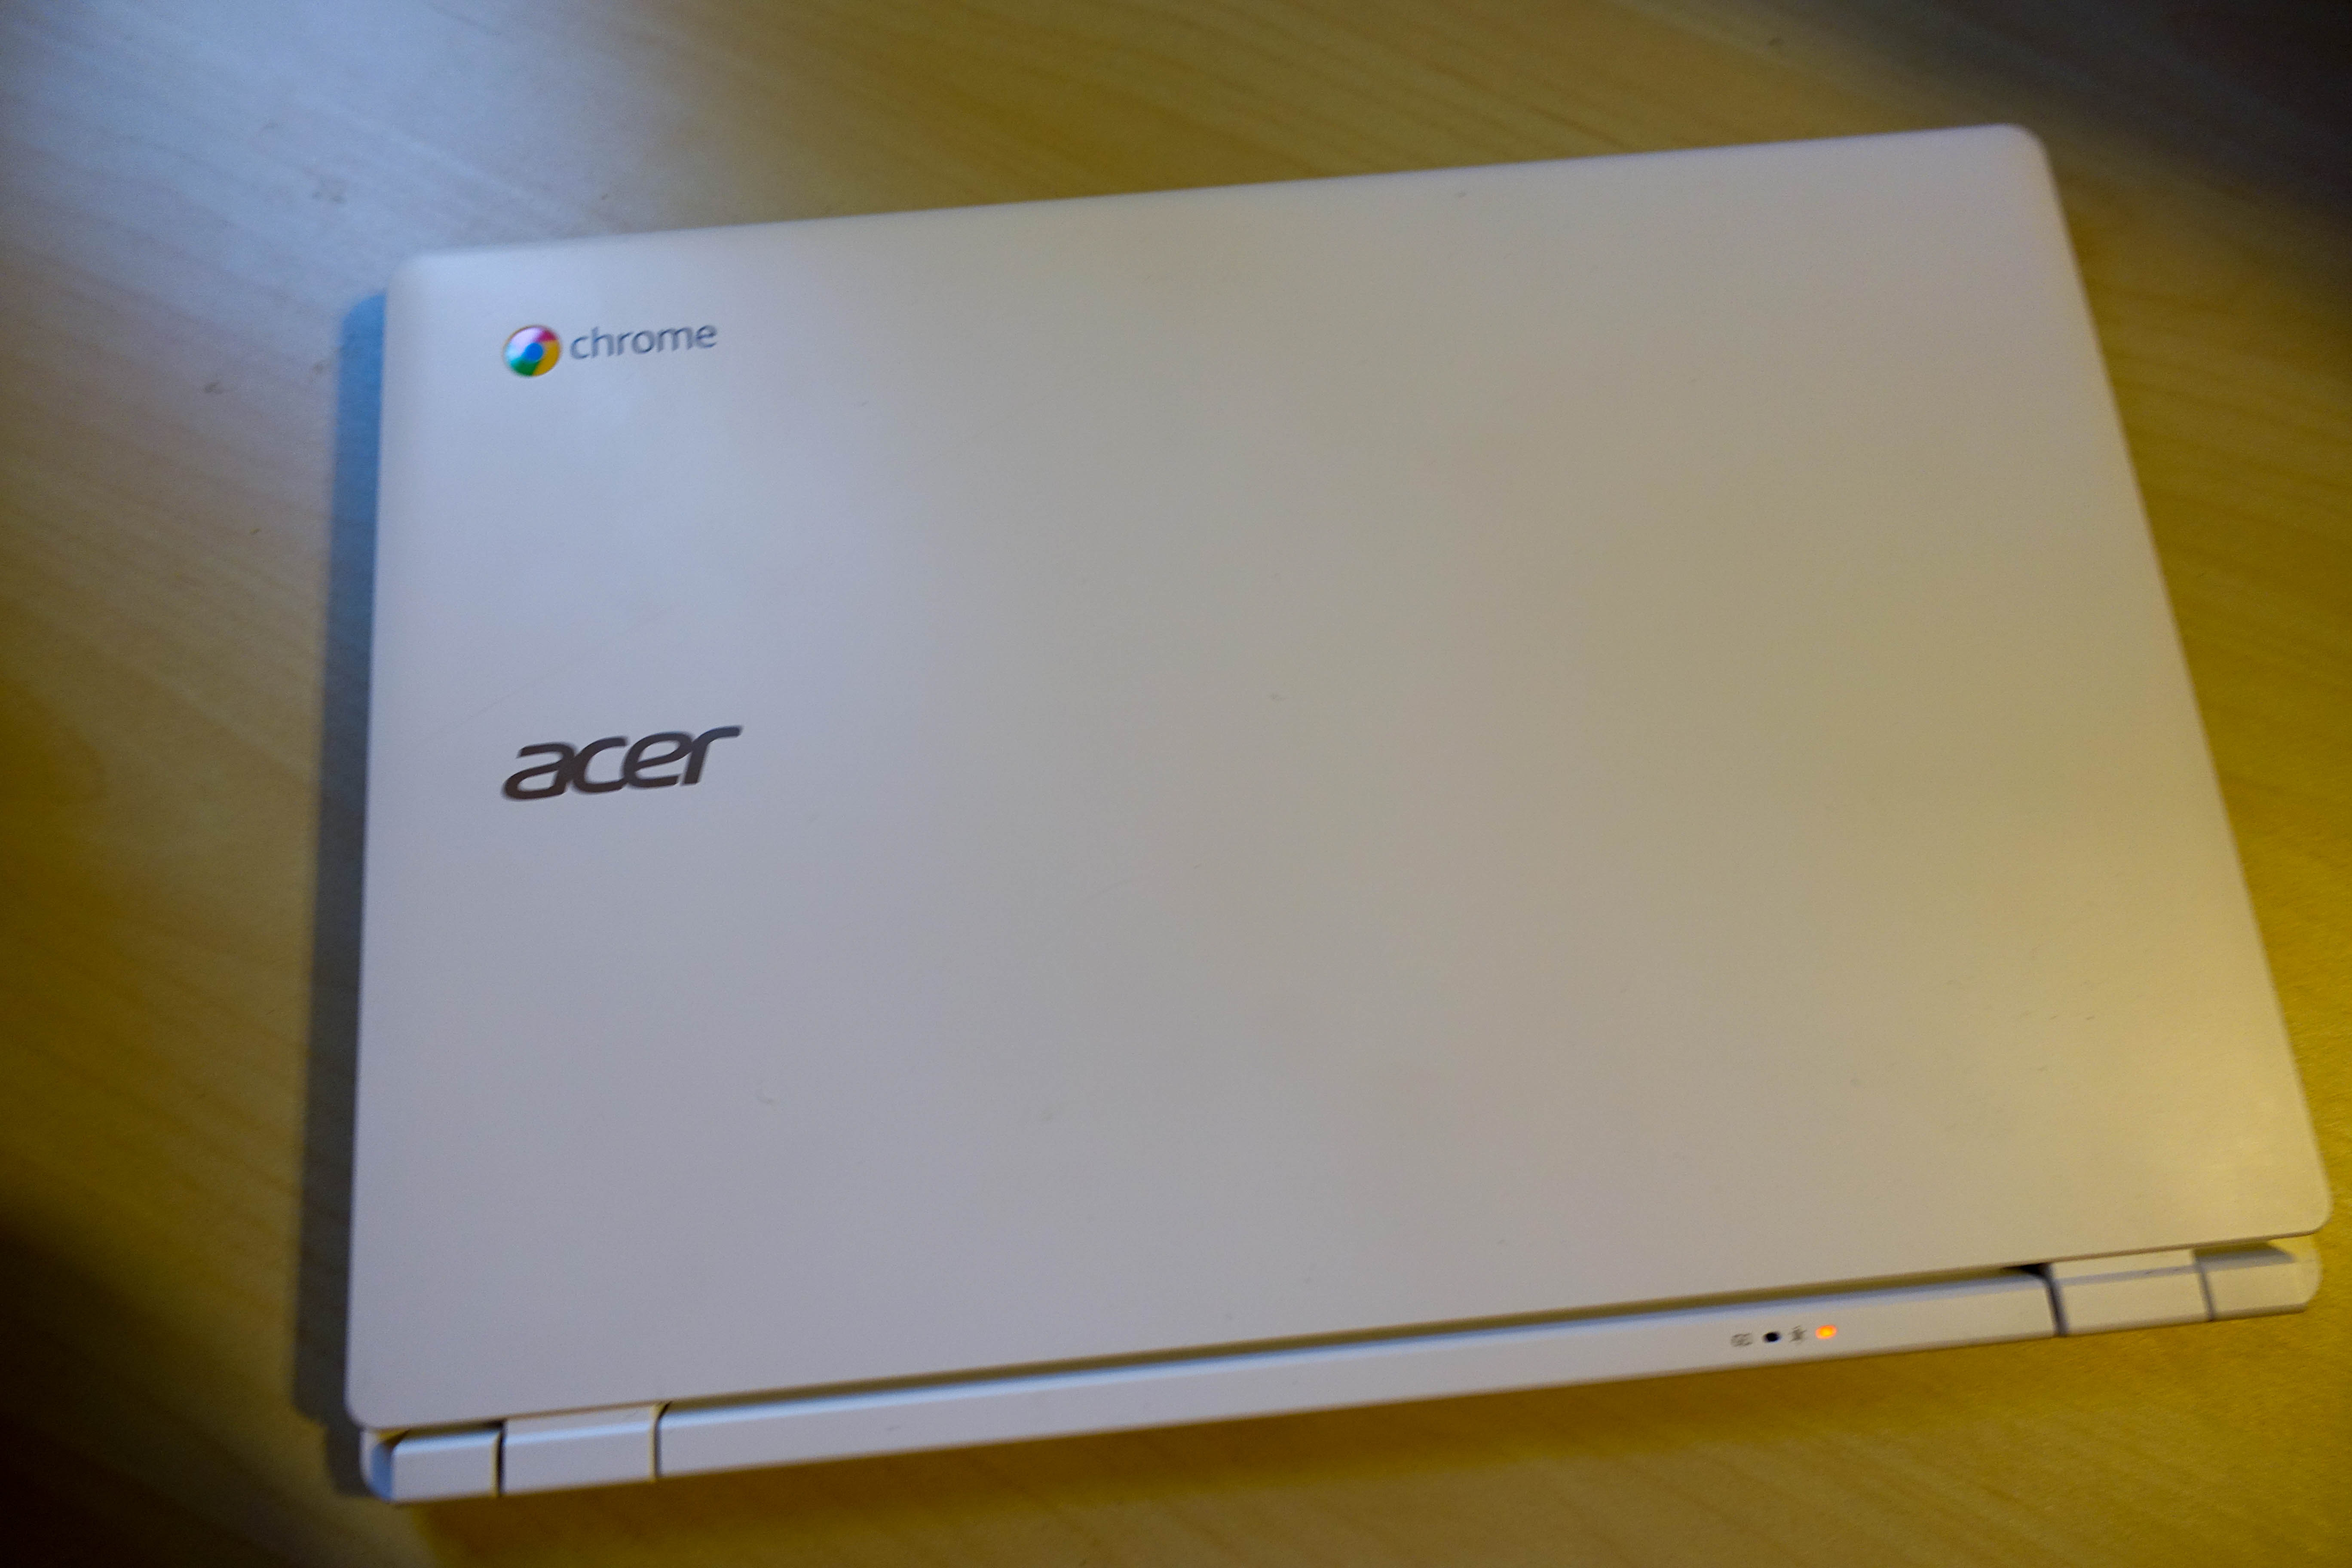 Acer Chromebook 13 Acer Chromebook 13 Review Acer Chromebook 13 Review Acer Chromebook 13 Performance